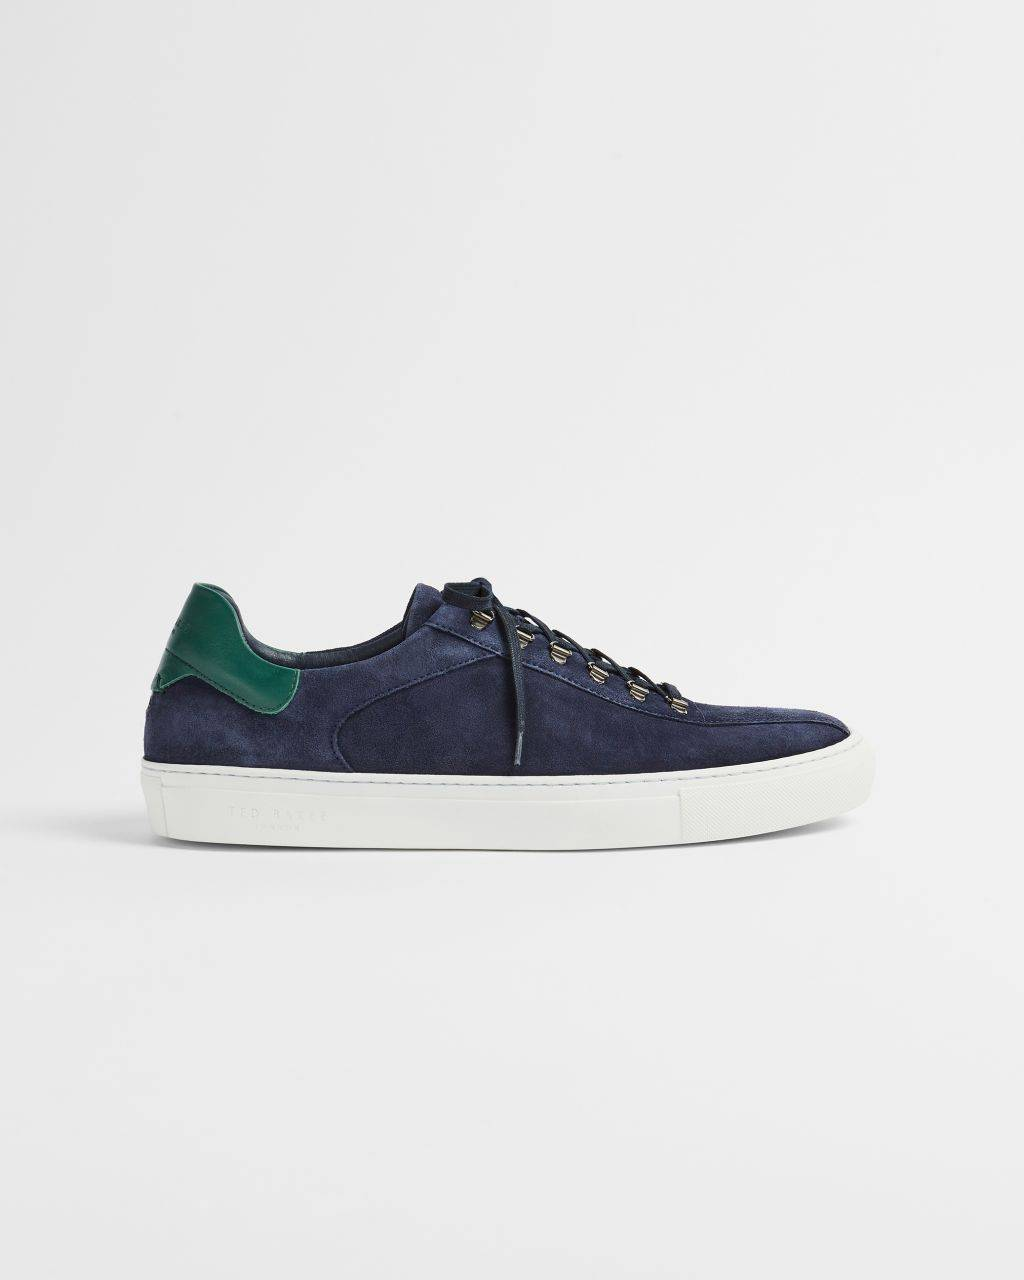 Ted Baker Hiker Lace Suede Trainers  - Navy - Size: UK 8 (EU 42)